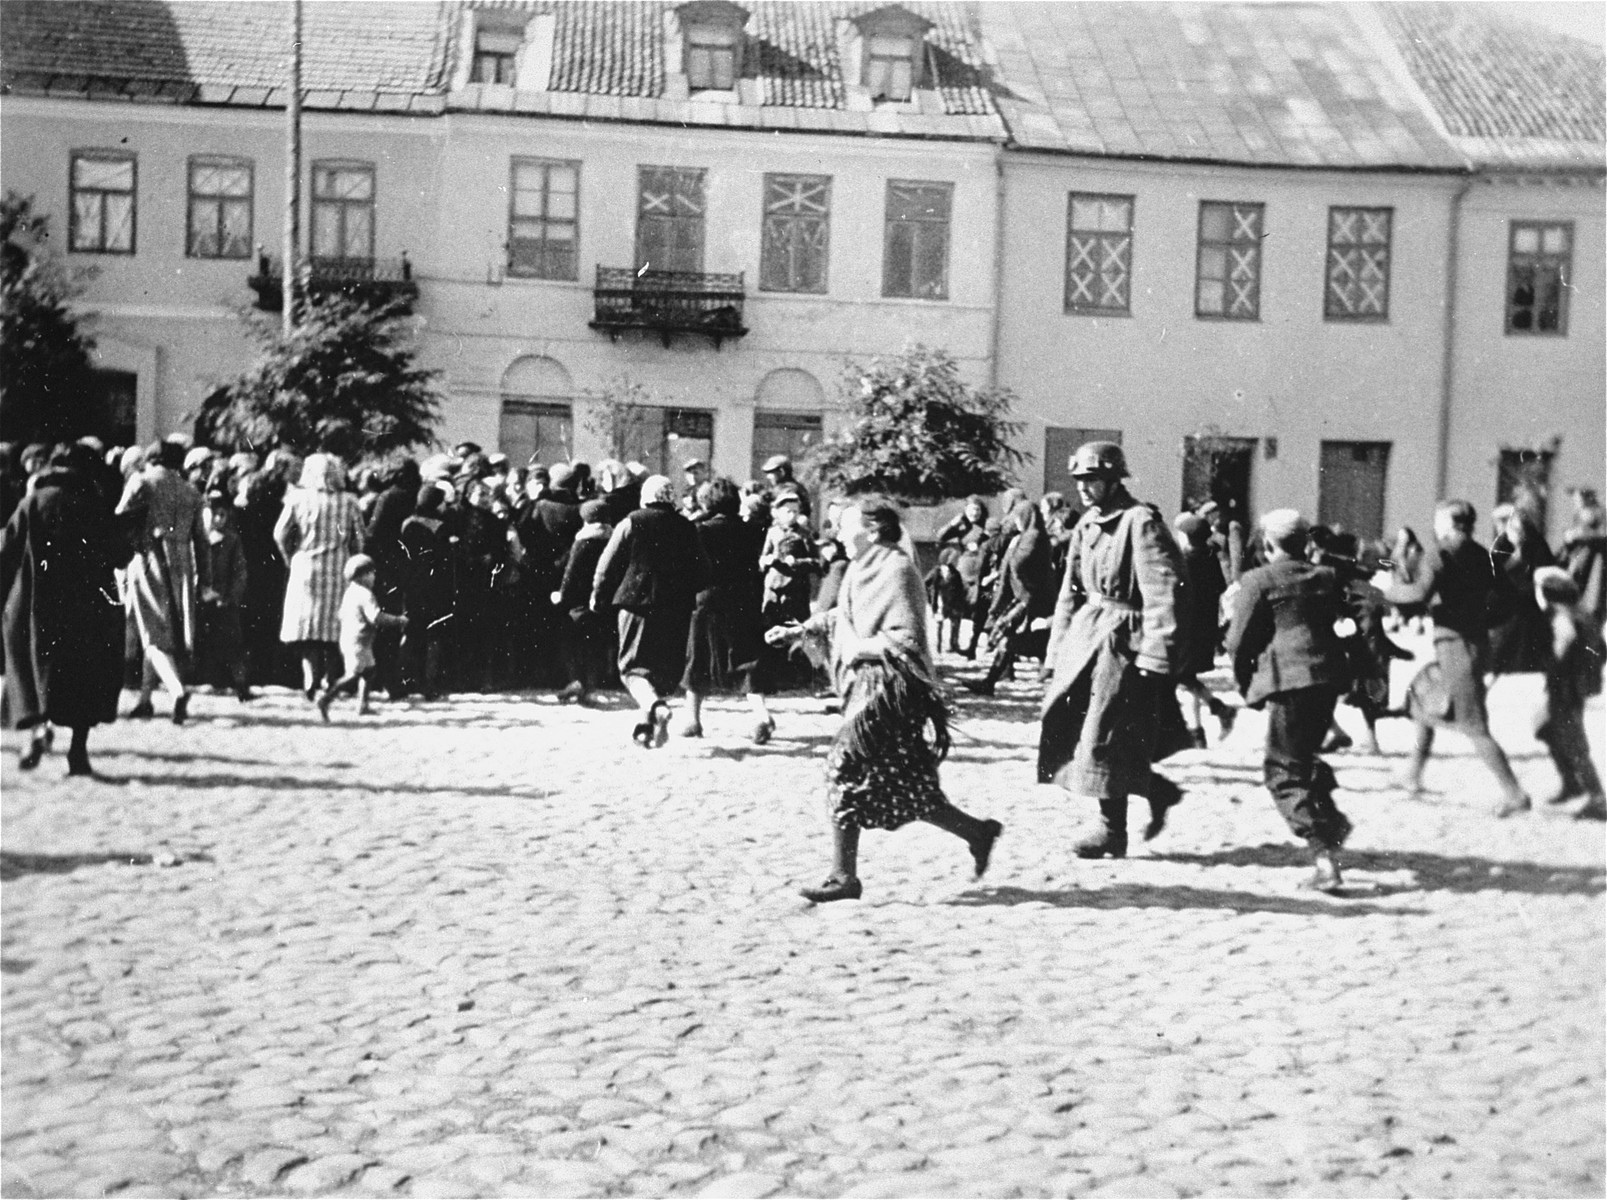 Jews are hurrying to a section of the town square in Plonsk where they have been forced to assemble.